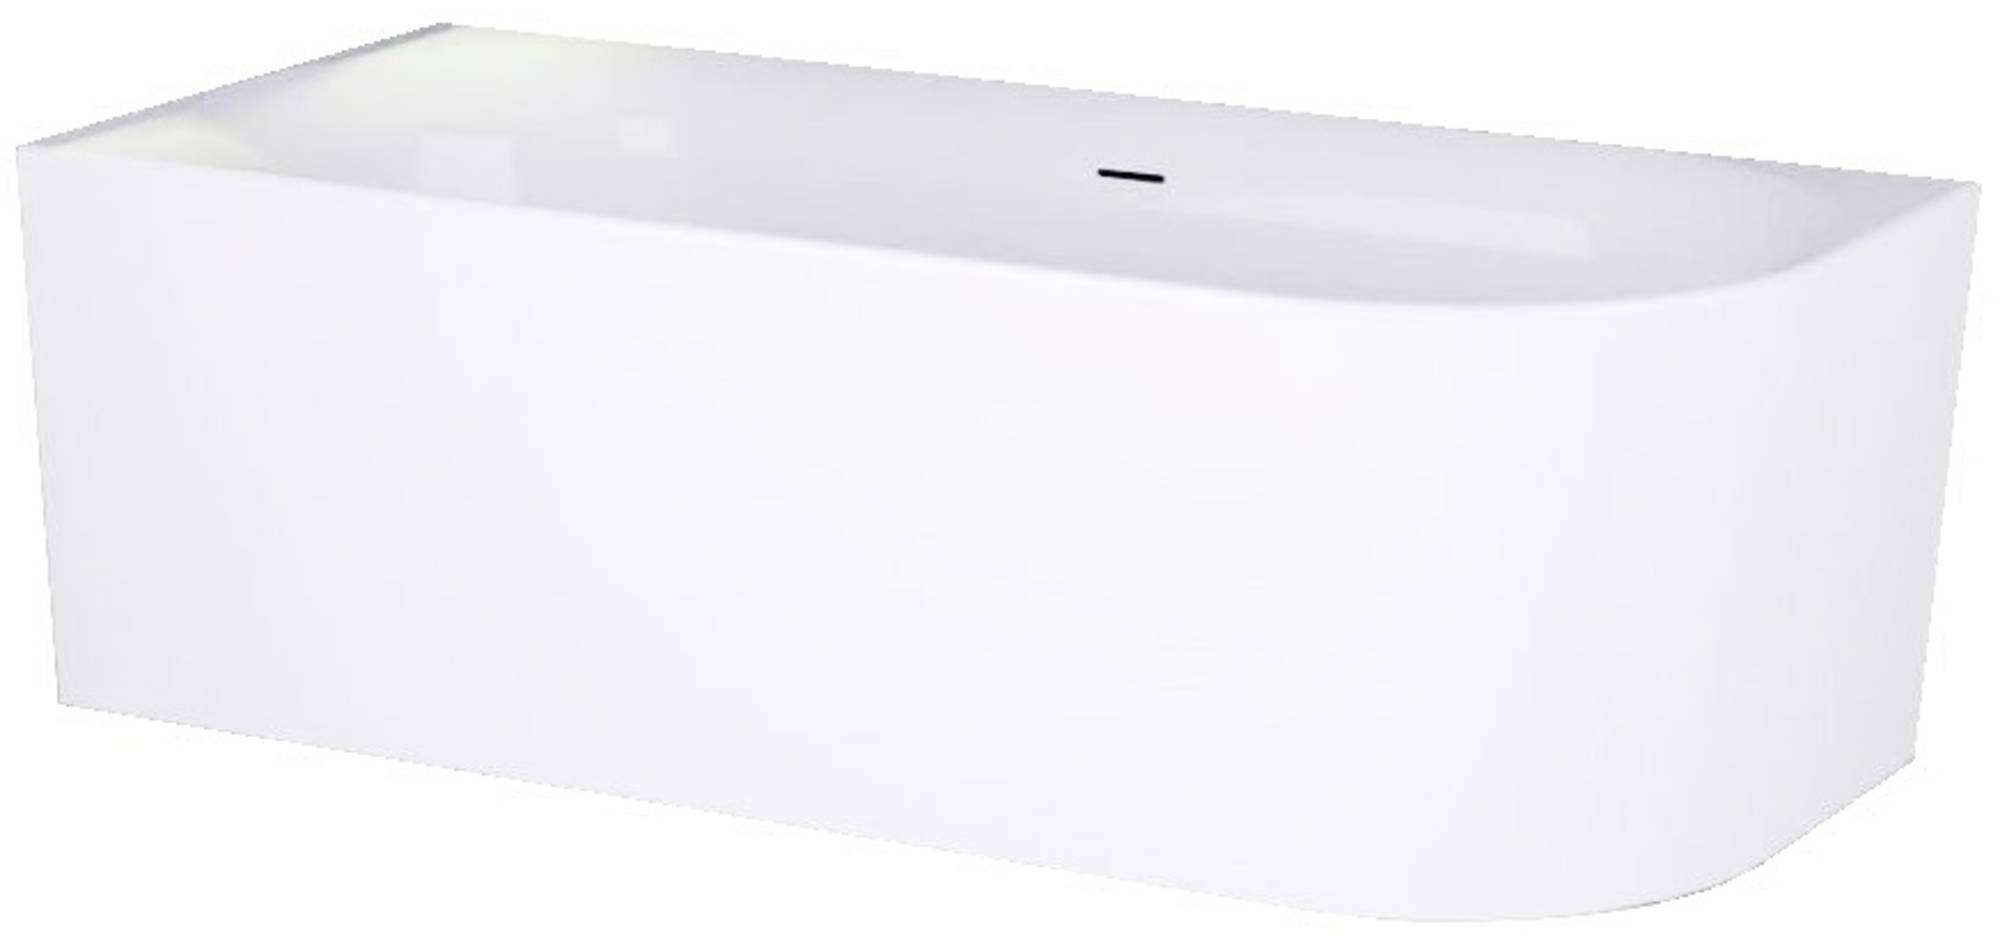 Ben Vico Bad Back to Wall L met Sleuf 180x80x60,5 cm Glans Wit